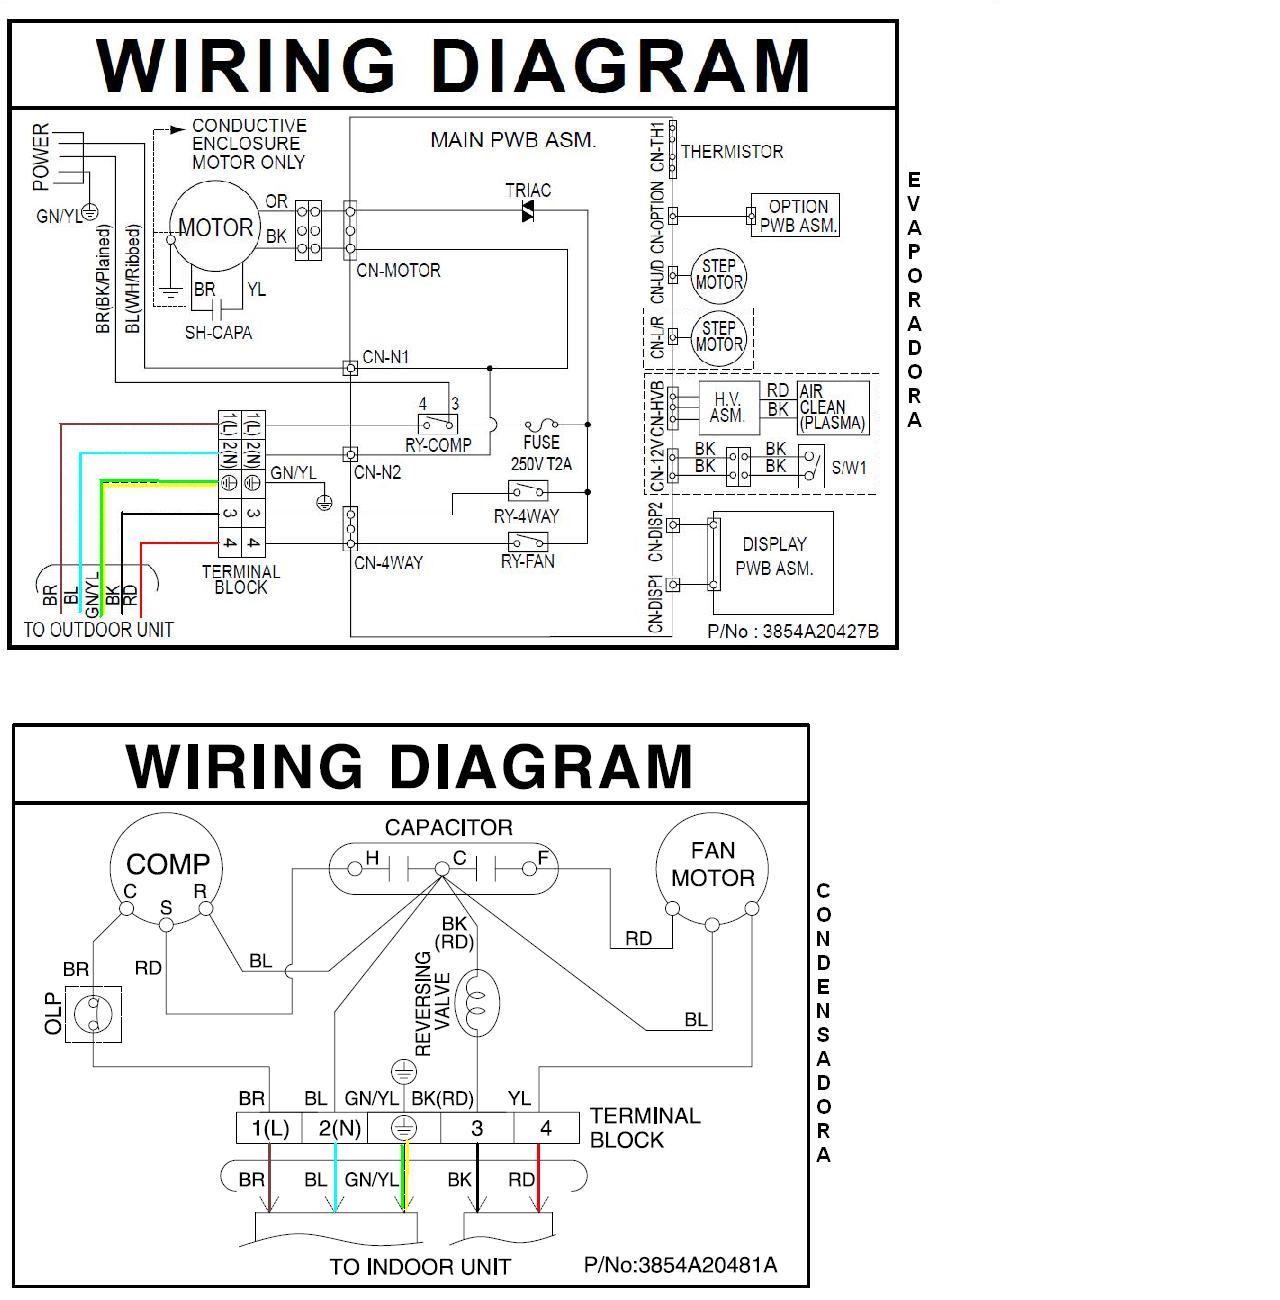 LG%20CONEXIONES York Mini Split Wiring Diagram on for klimaire, how wire multi cassete ductless, elc181q mirage, for mitsubishi,